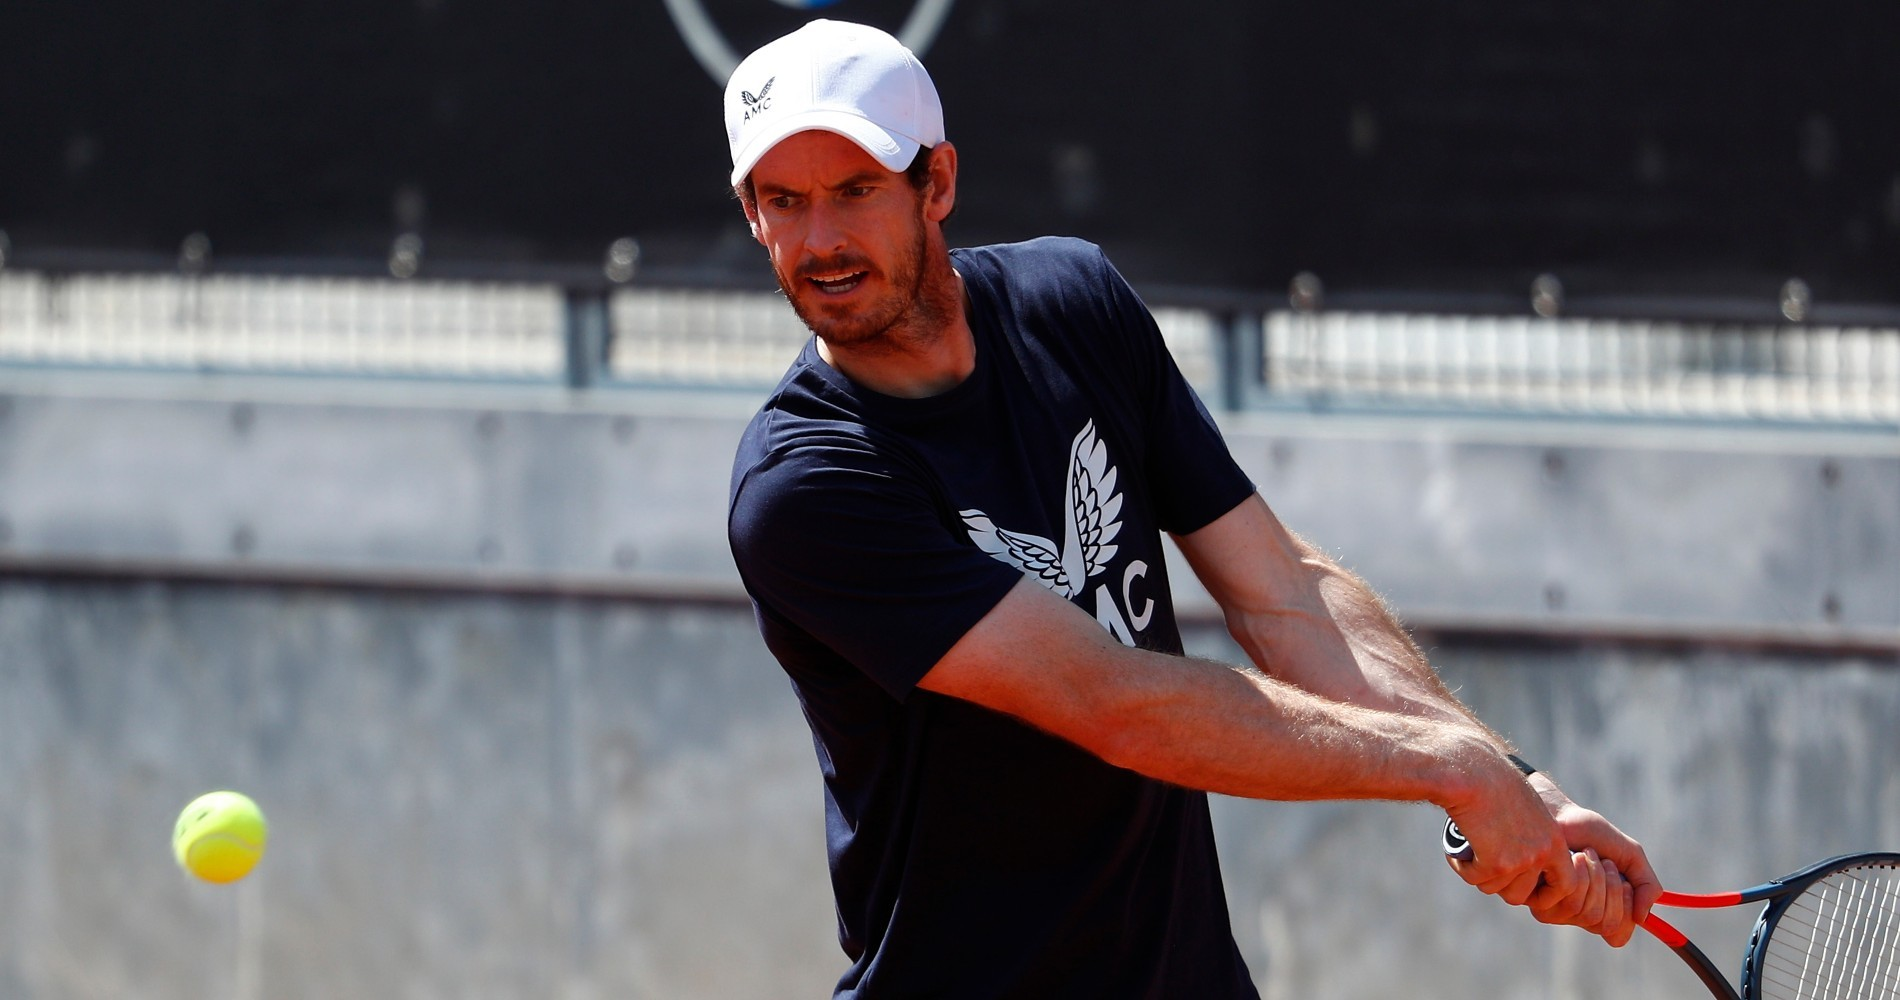 Andy Murray at Rome in 2021